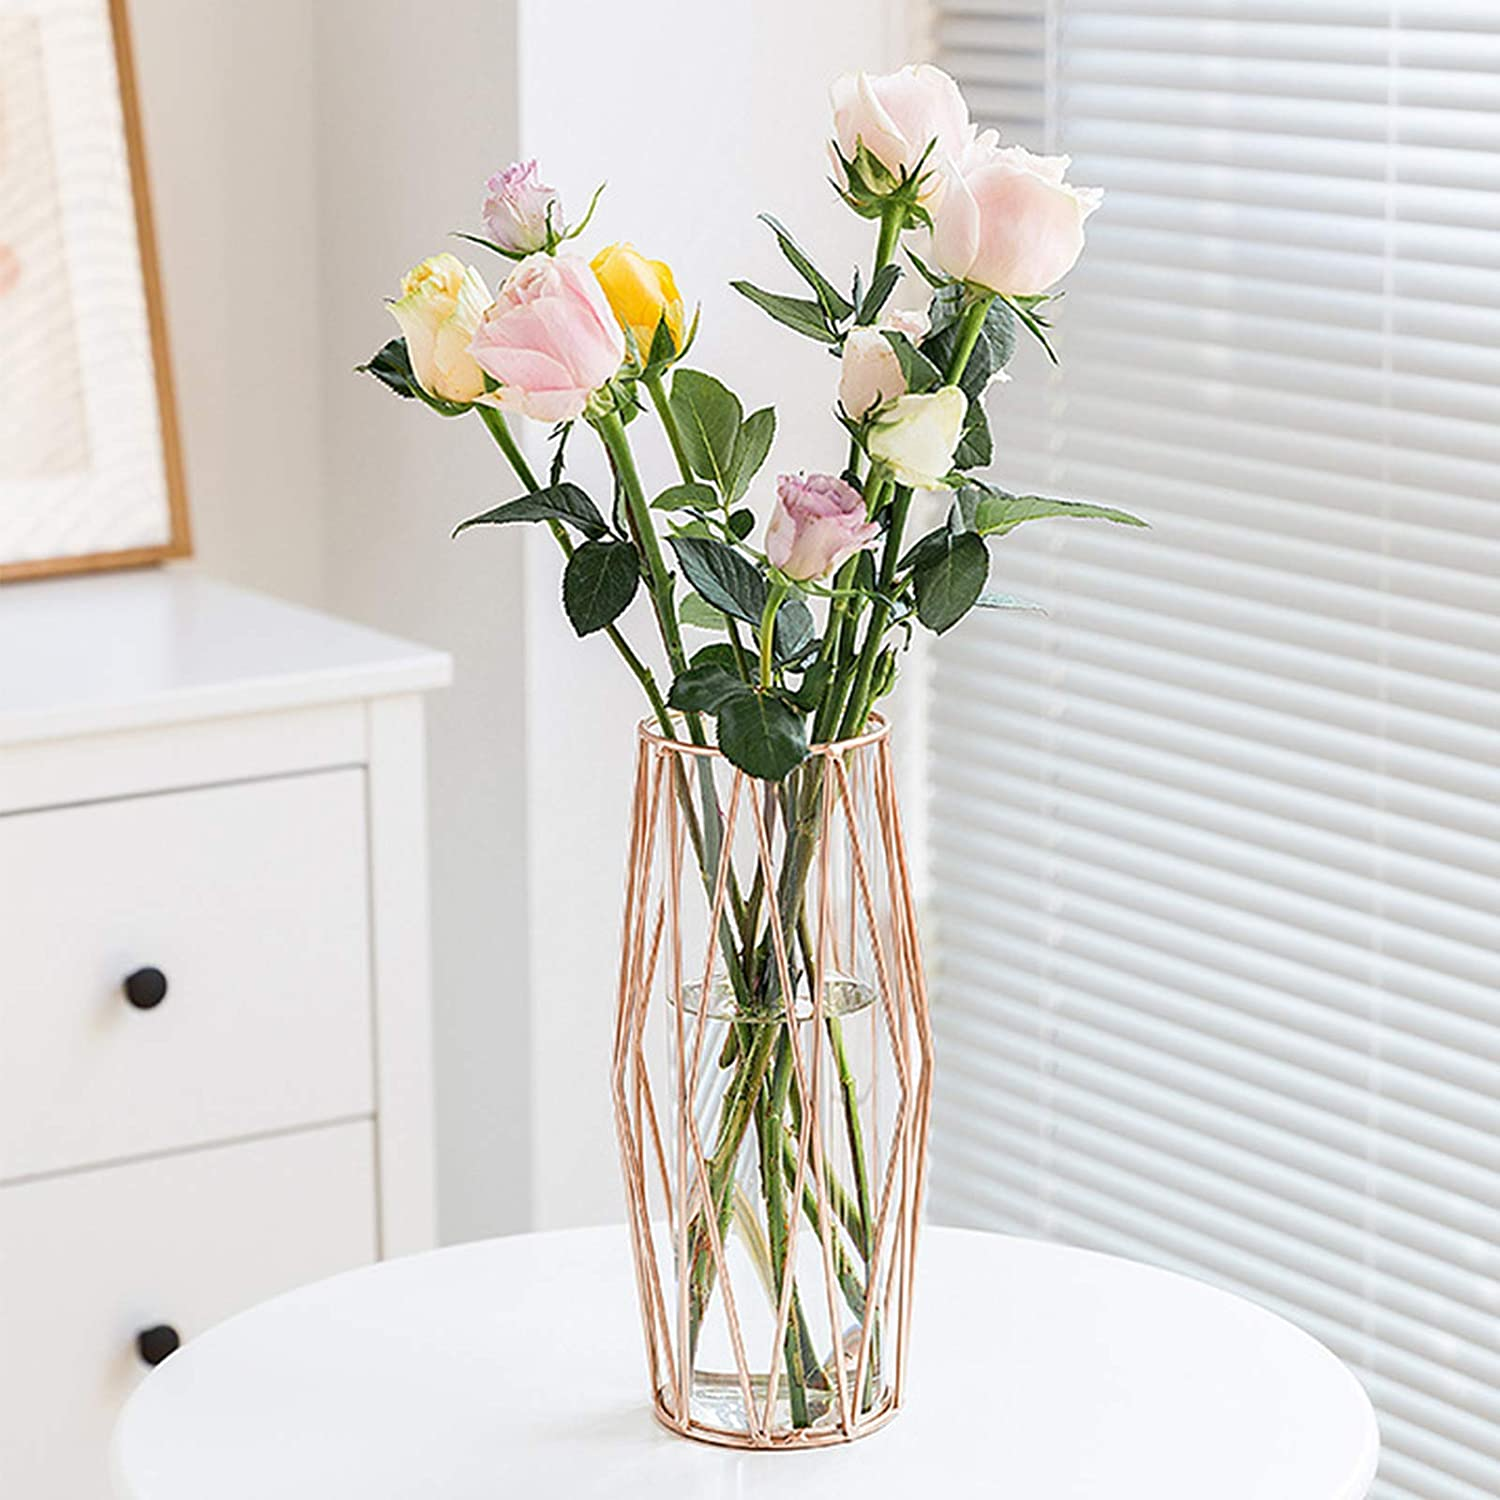 Gelible Geometric Glass Flower Vase with Metal Holder, Crystal Clear Transparent Planter Flowers Vase,Handcrafted Plating Metal Vase,Clear Vase Decor Home Office Wedding Party and Holiday Celebrate